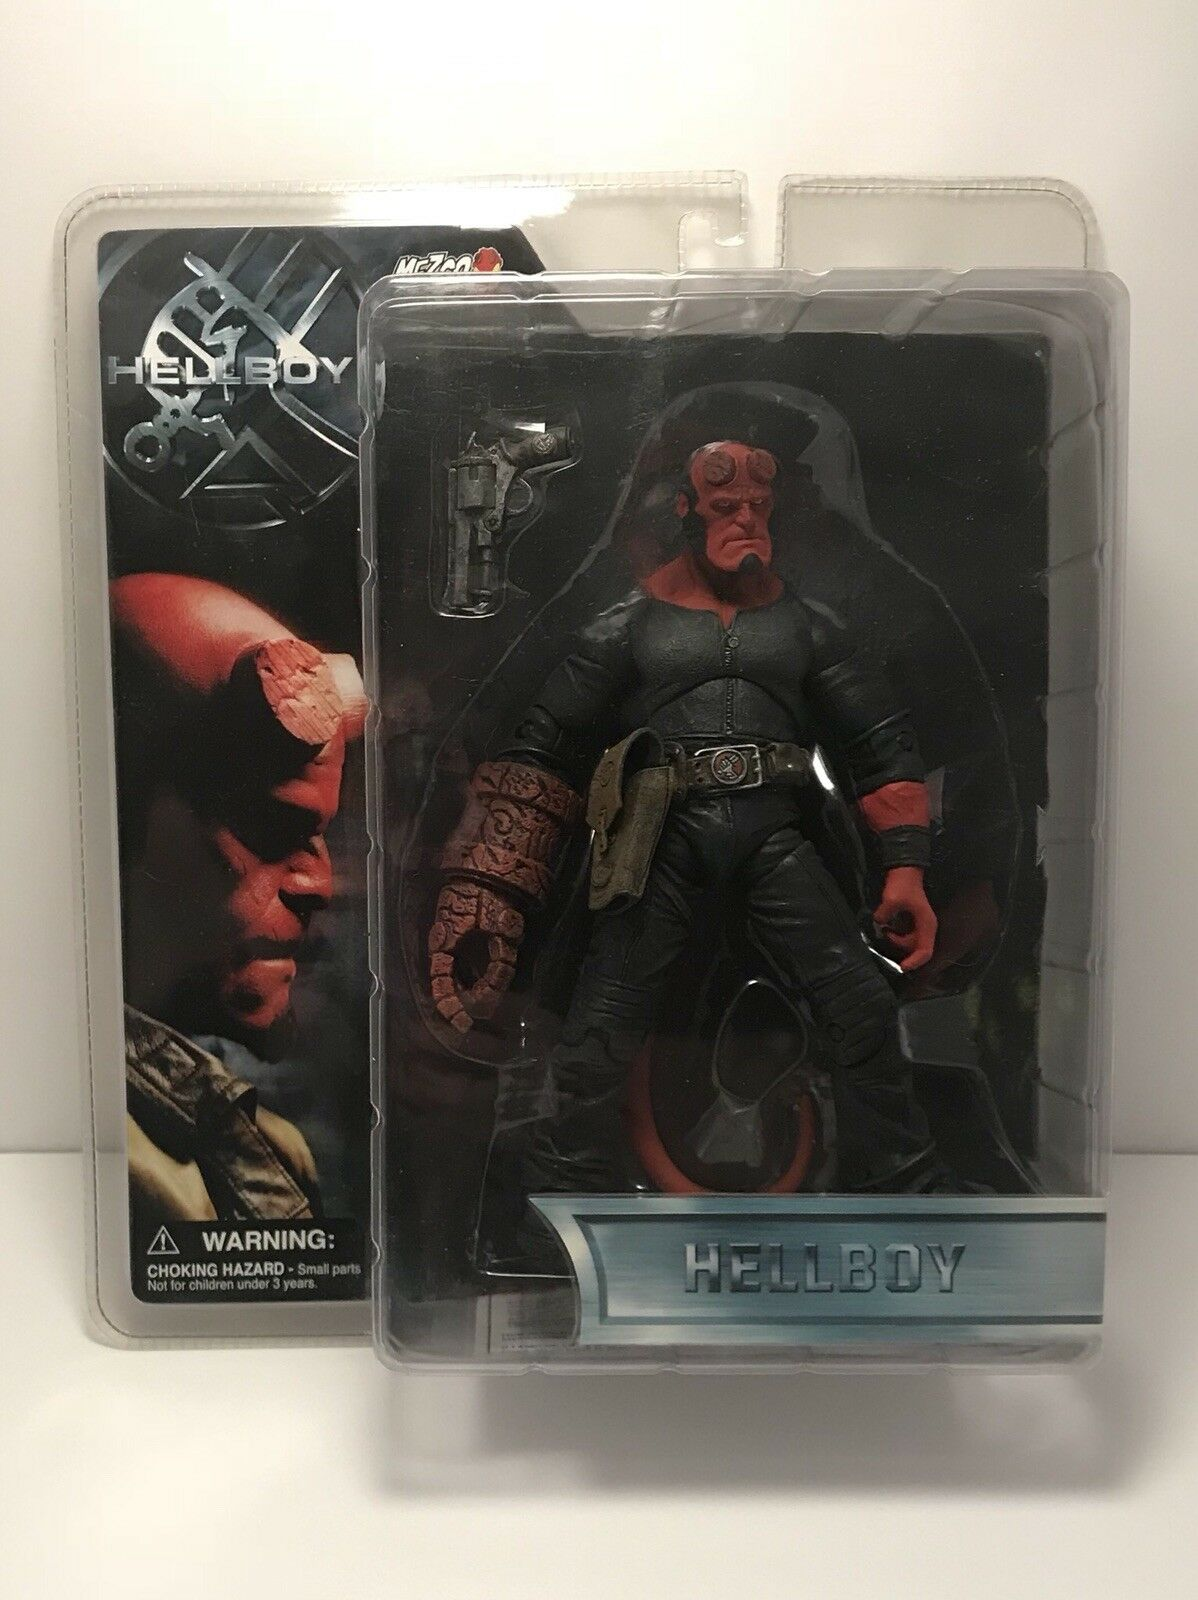 HELLBOY Closed Mouth No Coat Action Figure Mezco Toy 2004 NEW